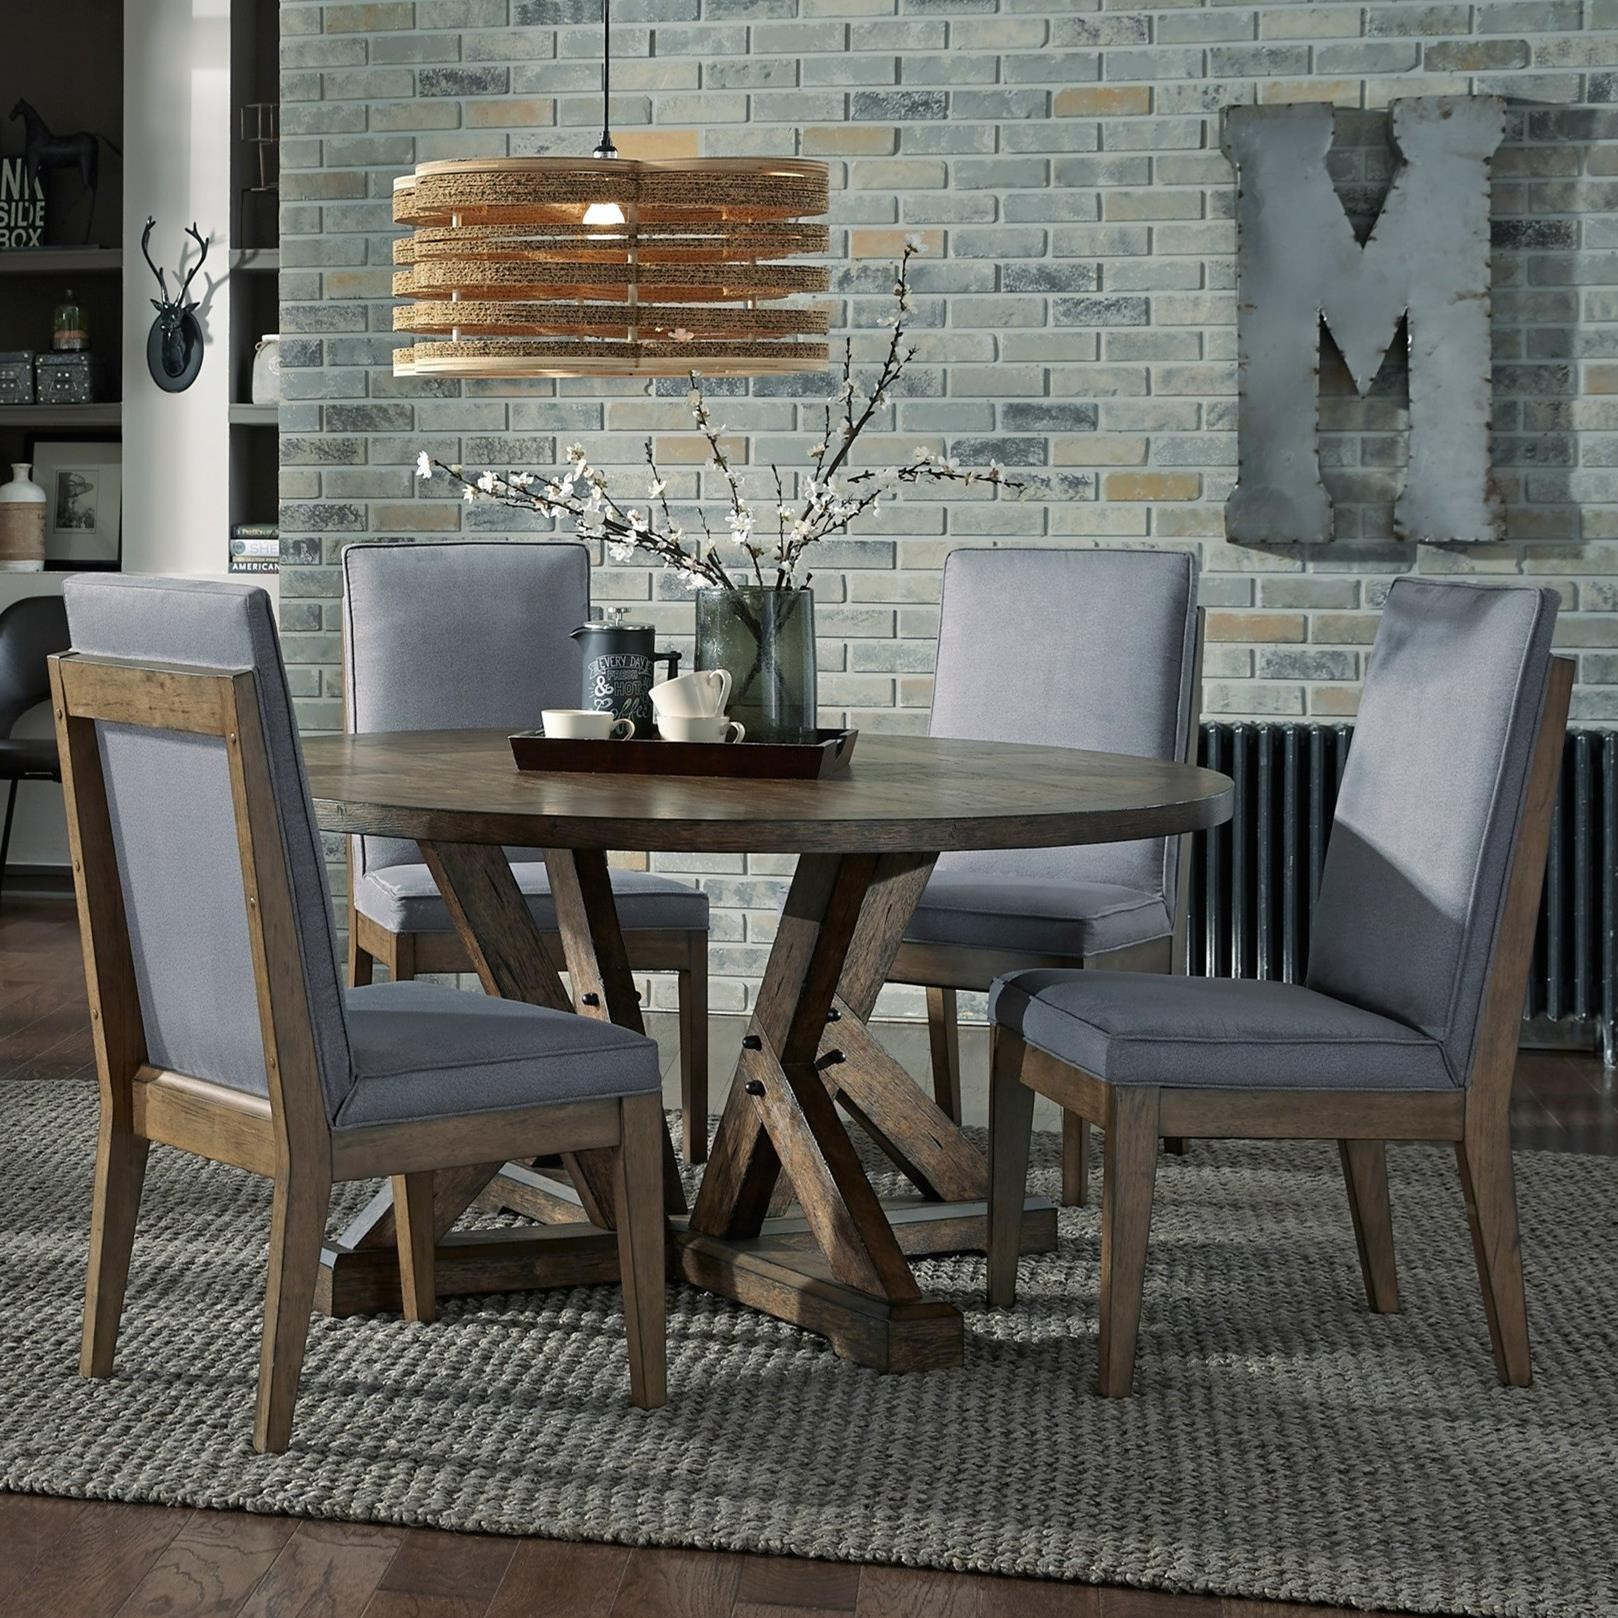 Broyhill Furniture Bedford Avenue 5 Piece Table and Chair Set - Item Number: 8615-503+4x523